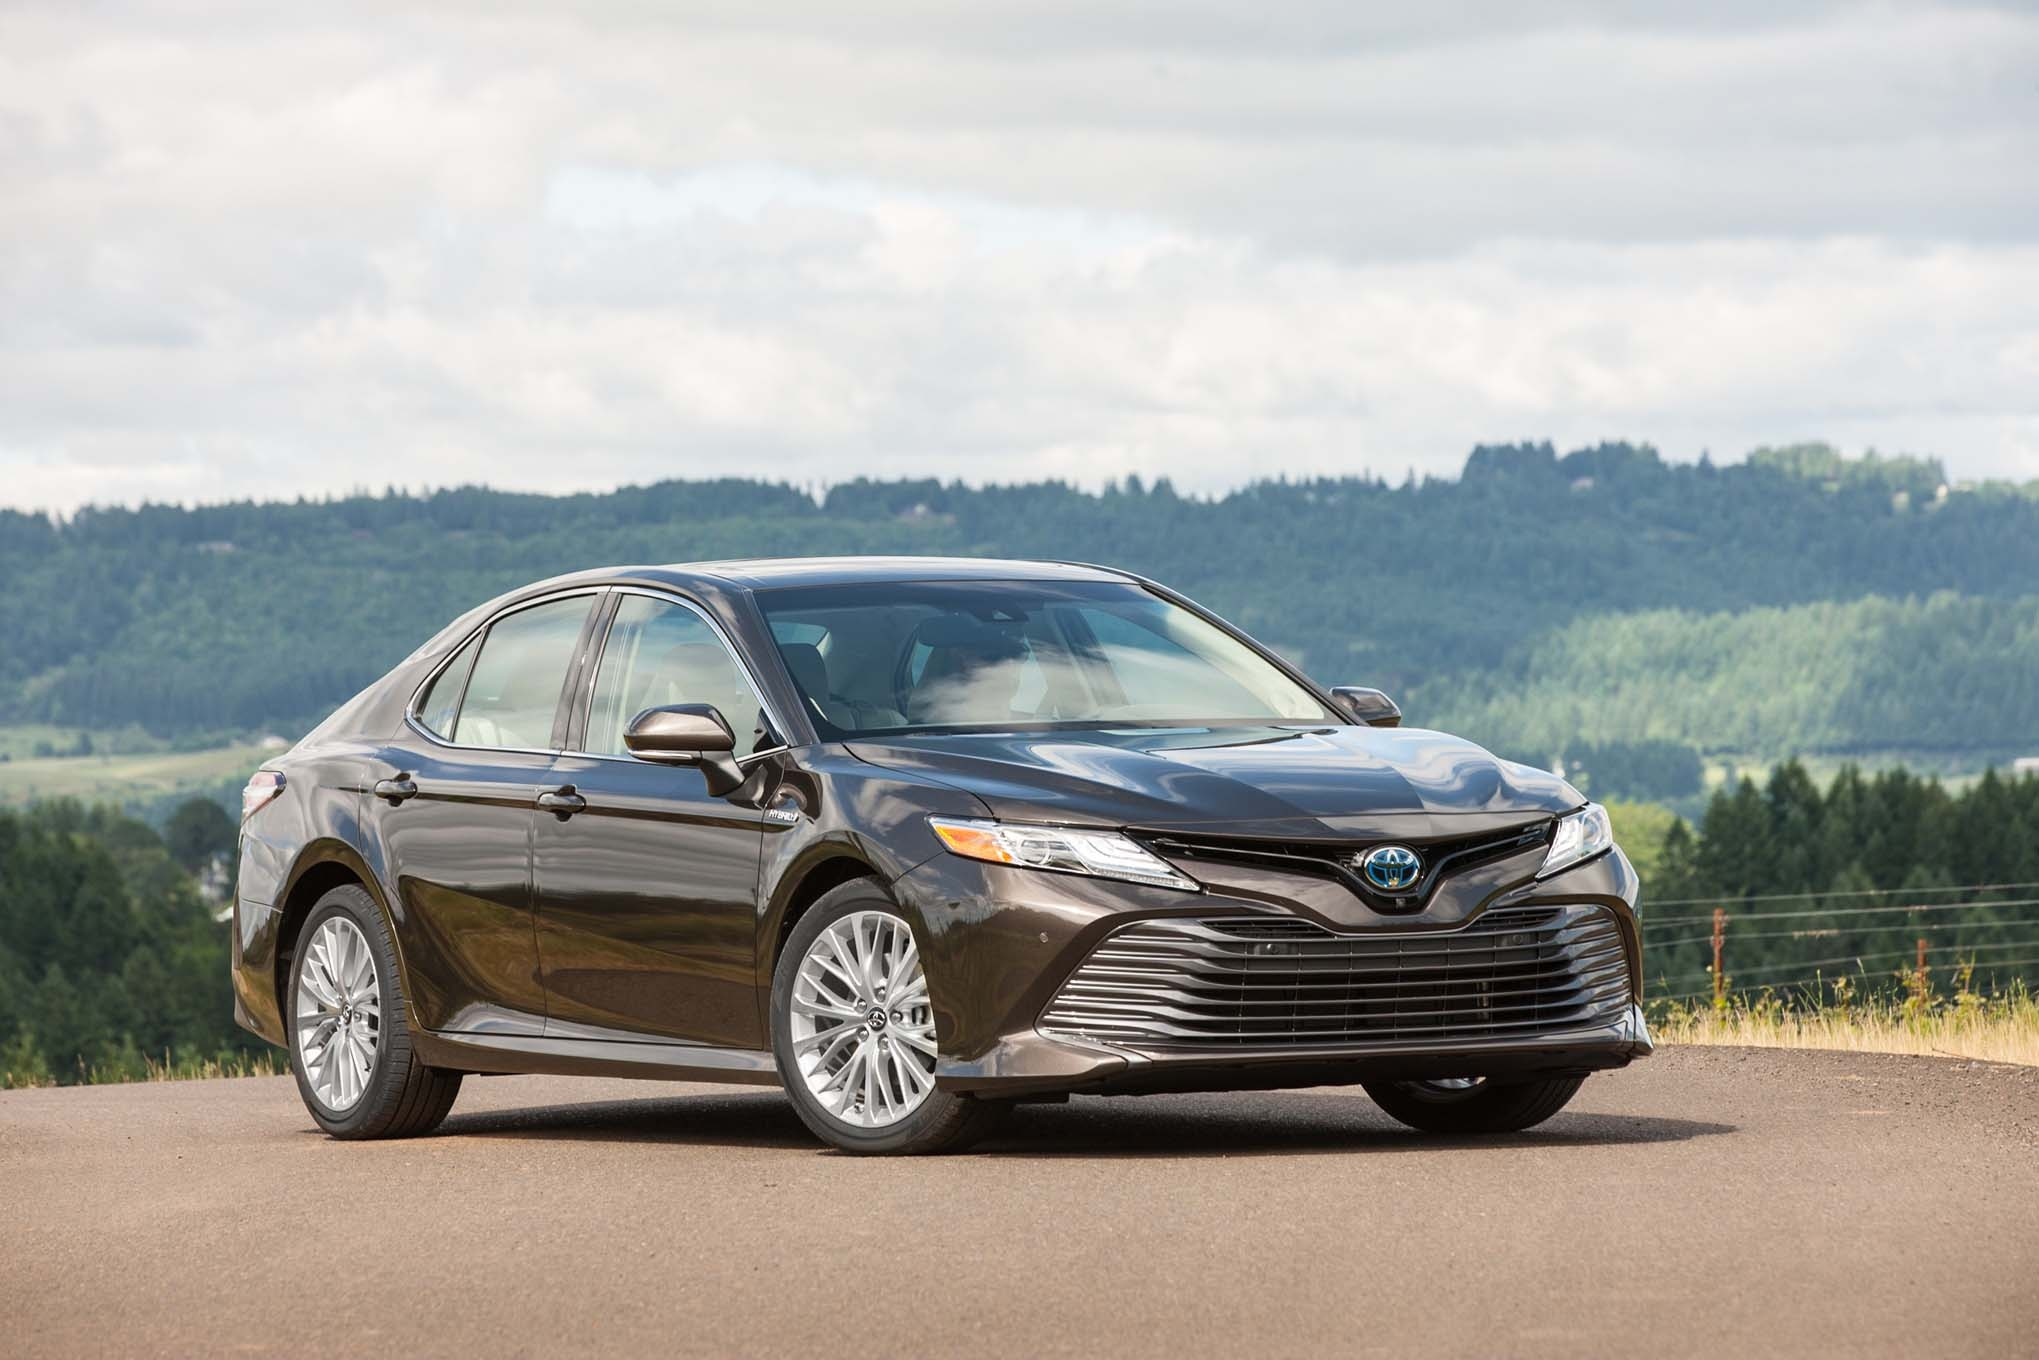 2018 toyota camry first drive review automobile magazine. Black Bedroom Furniture Sets. Home Design Ideas